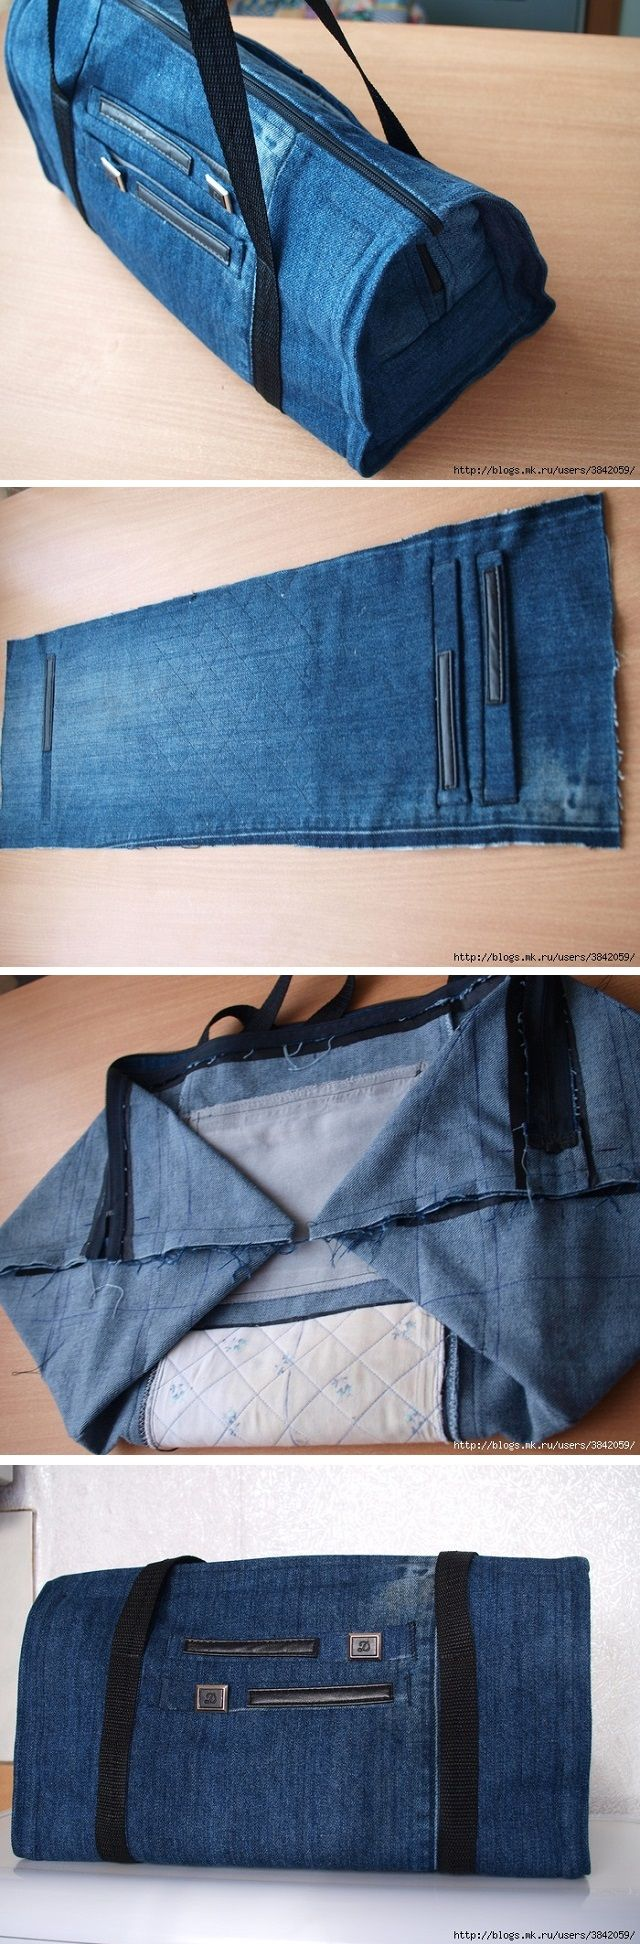 Ways to recycle old jeans - Recycle Old Jeans Into A Beautiful Zippered Bag